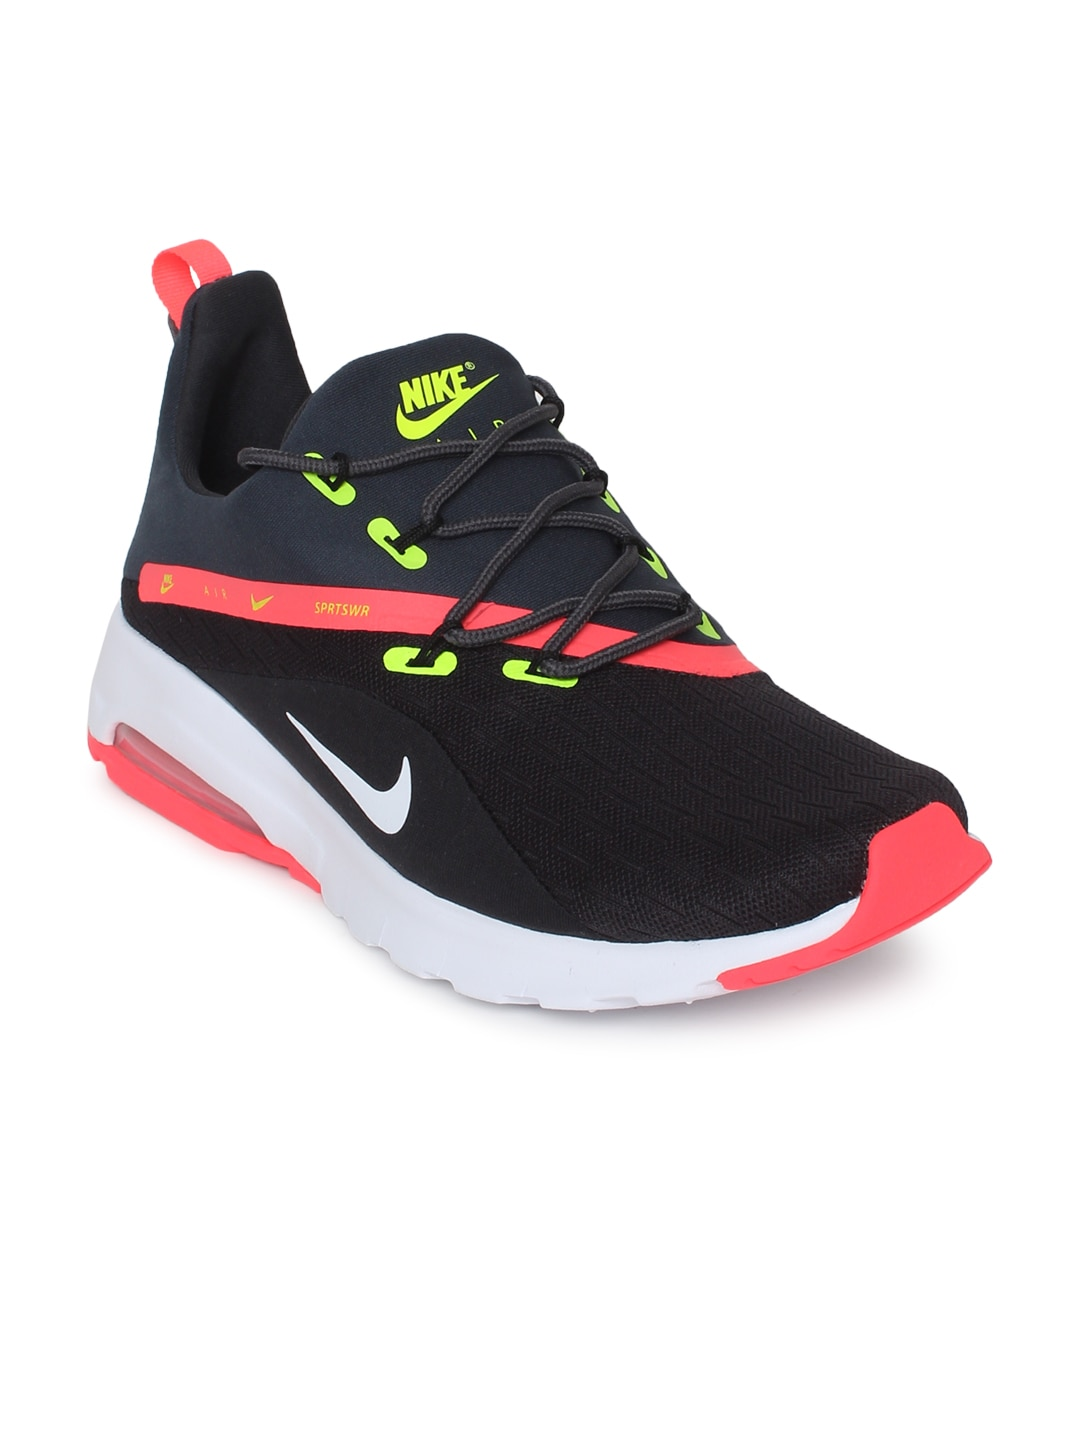 buy online a4fd6 7ebce Nike Air Max Shoes - Buy Nike Air Max Shoes Online for Men   Women